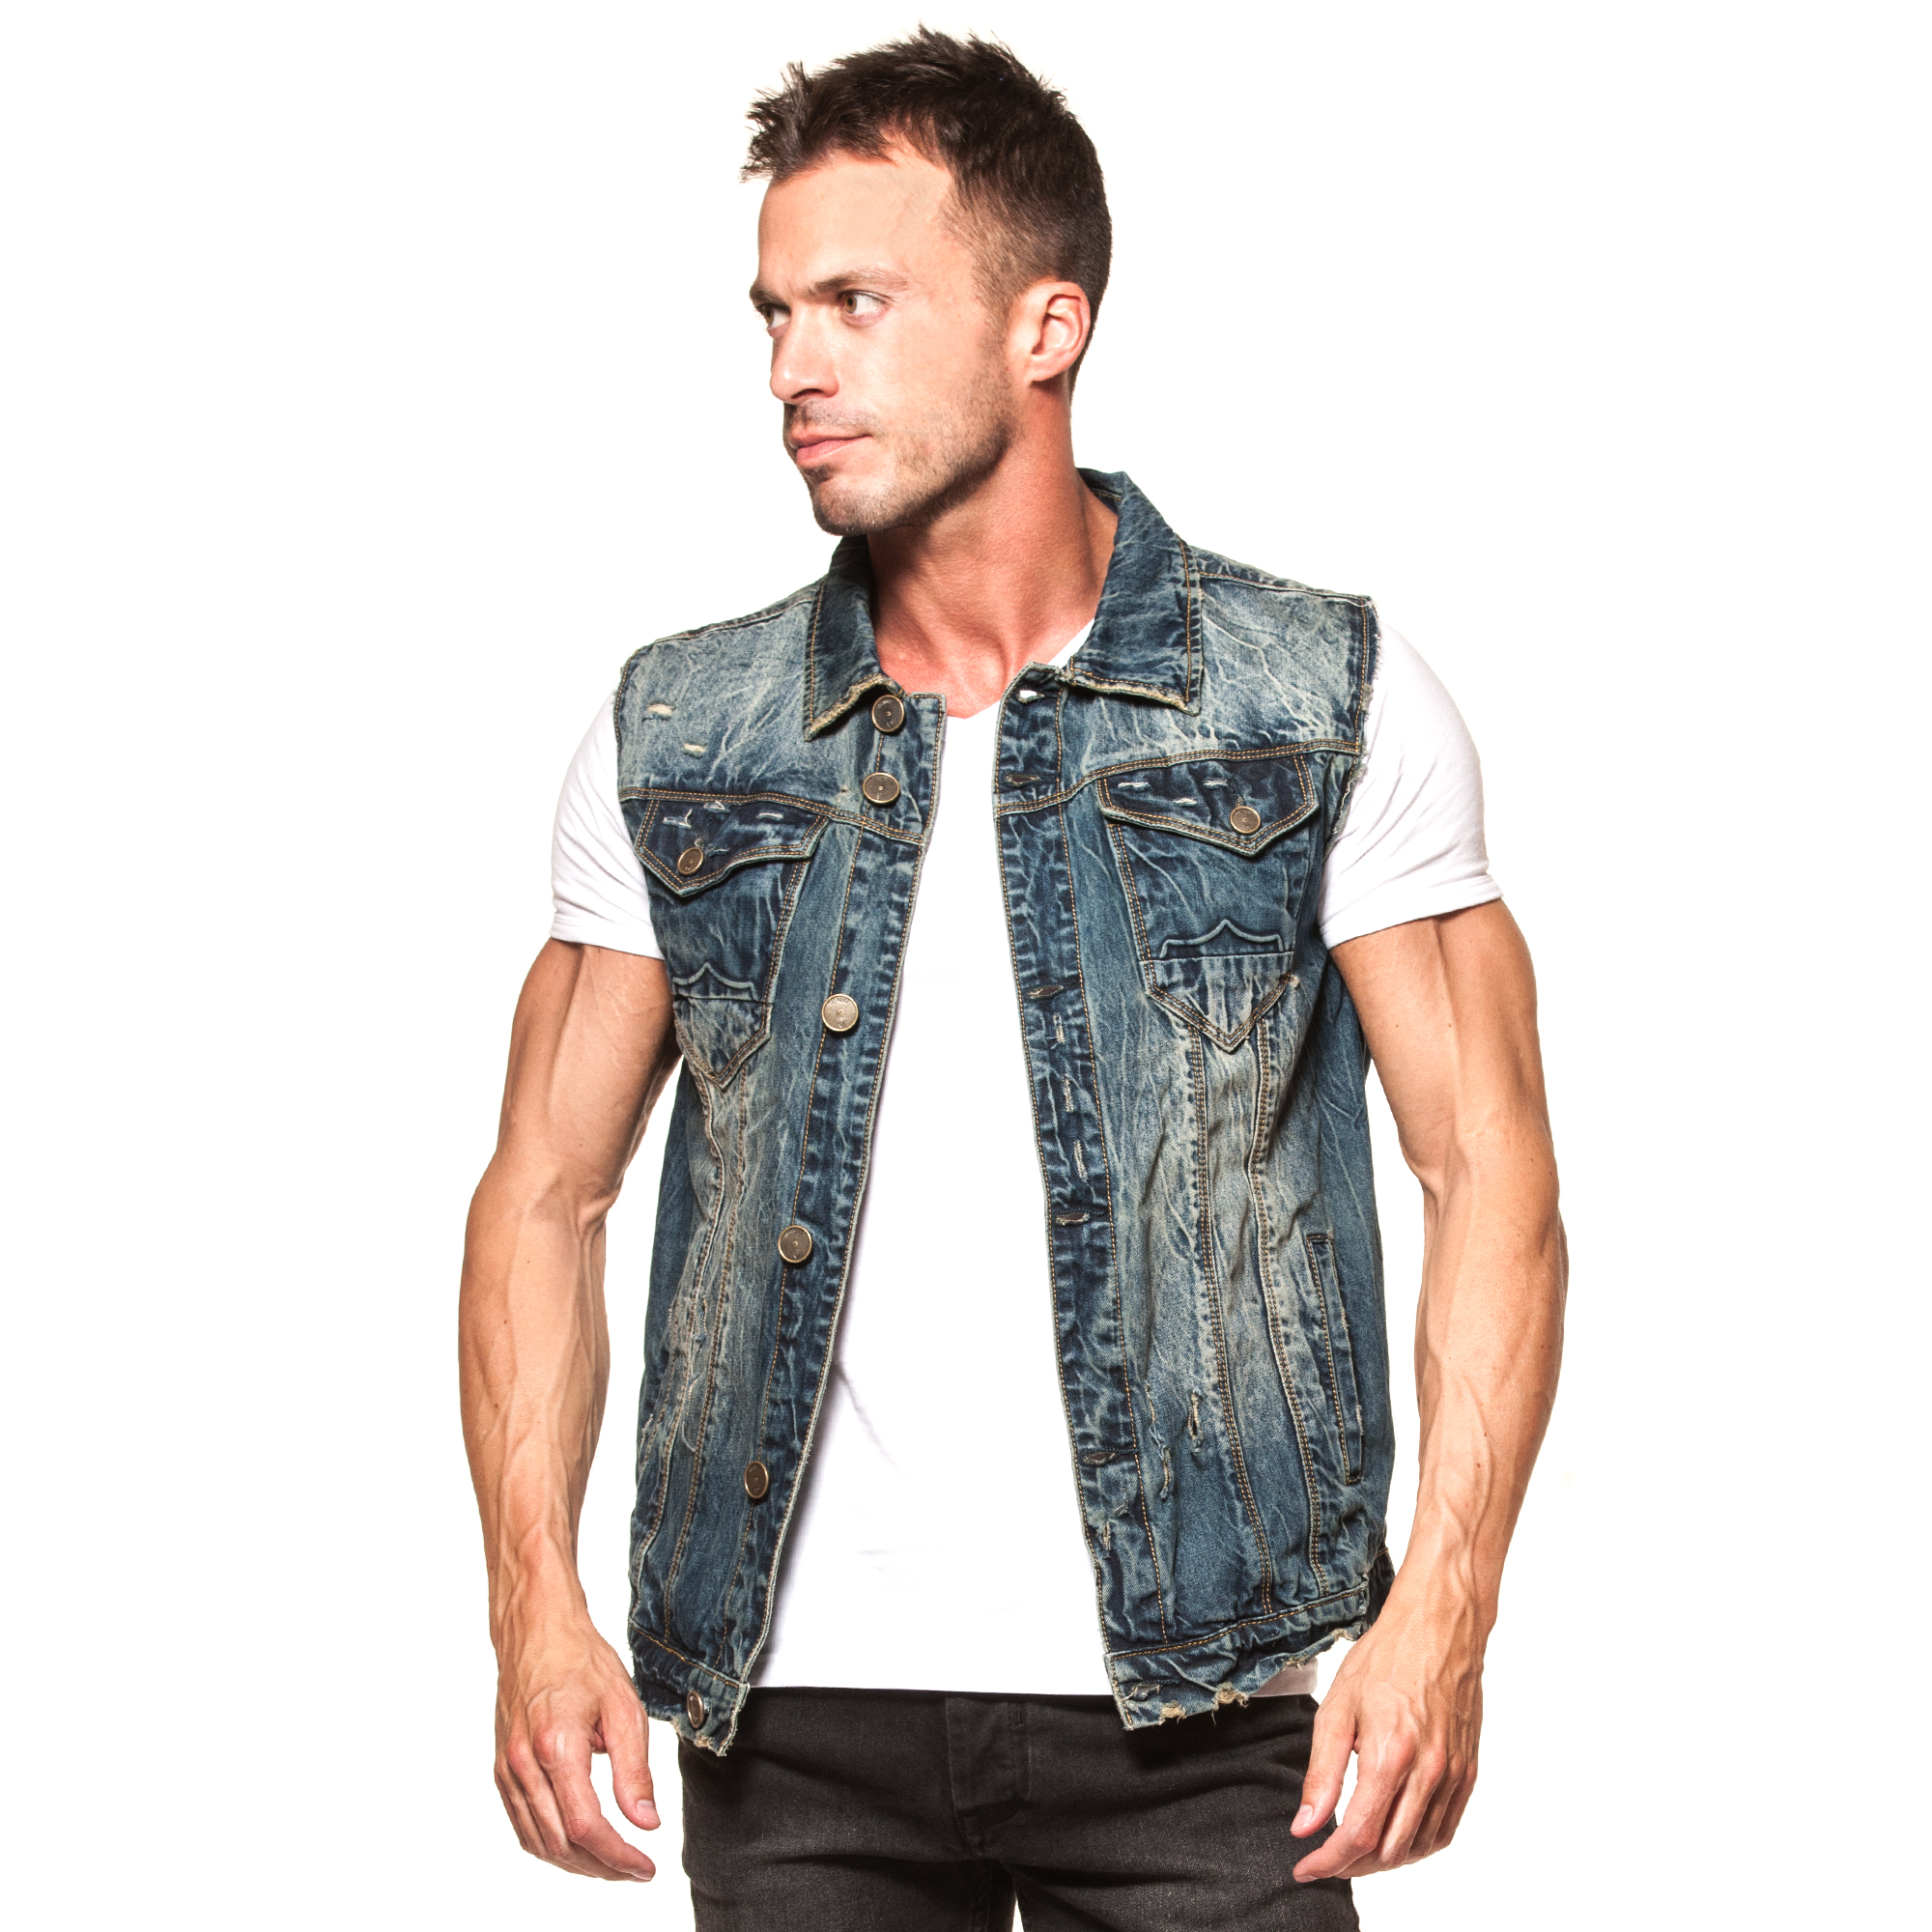 Free Shipping on Many Items! Shop from the world's largest selection and best deals for Men's Denim gilet Coats & Jackets. Shop with confidence on eBay!